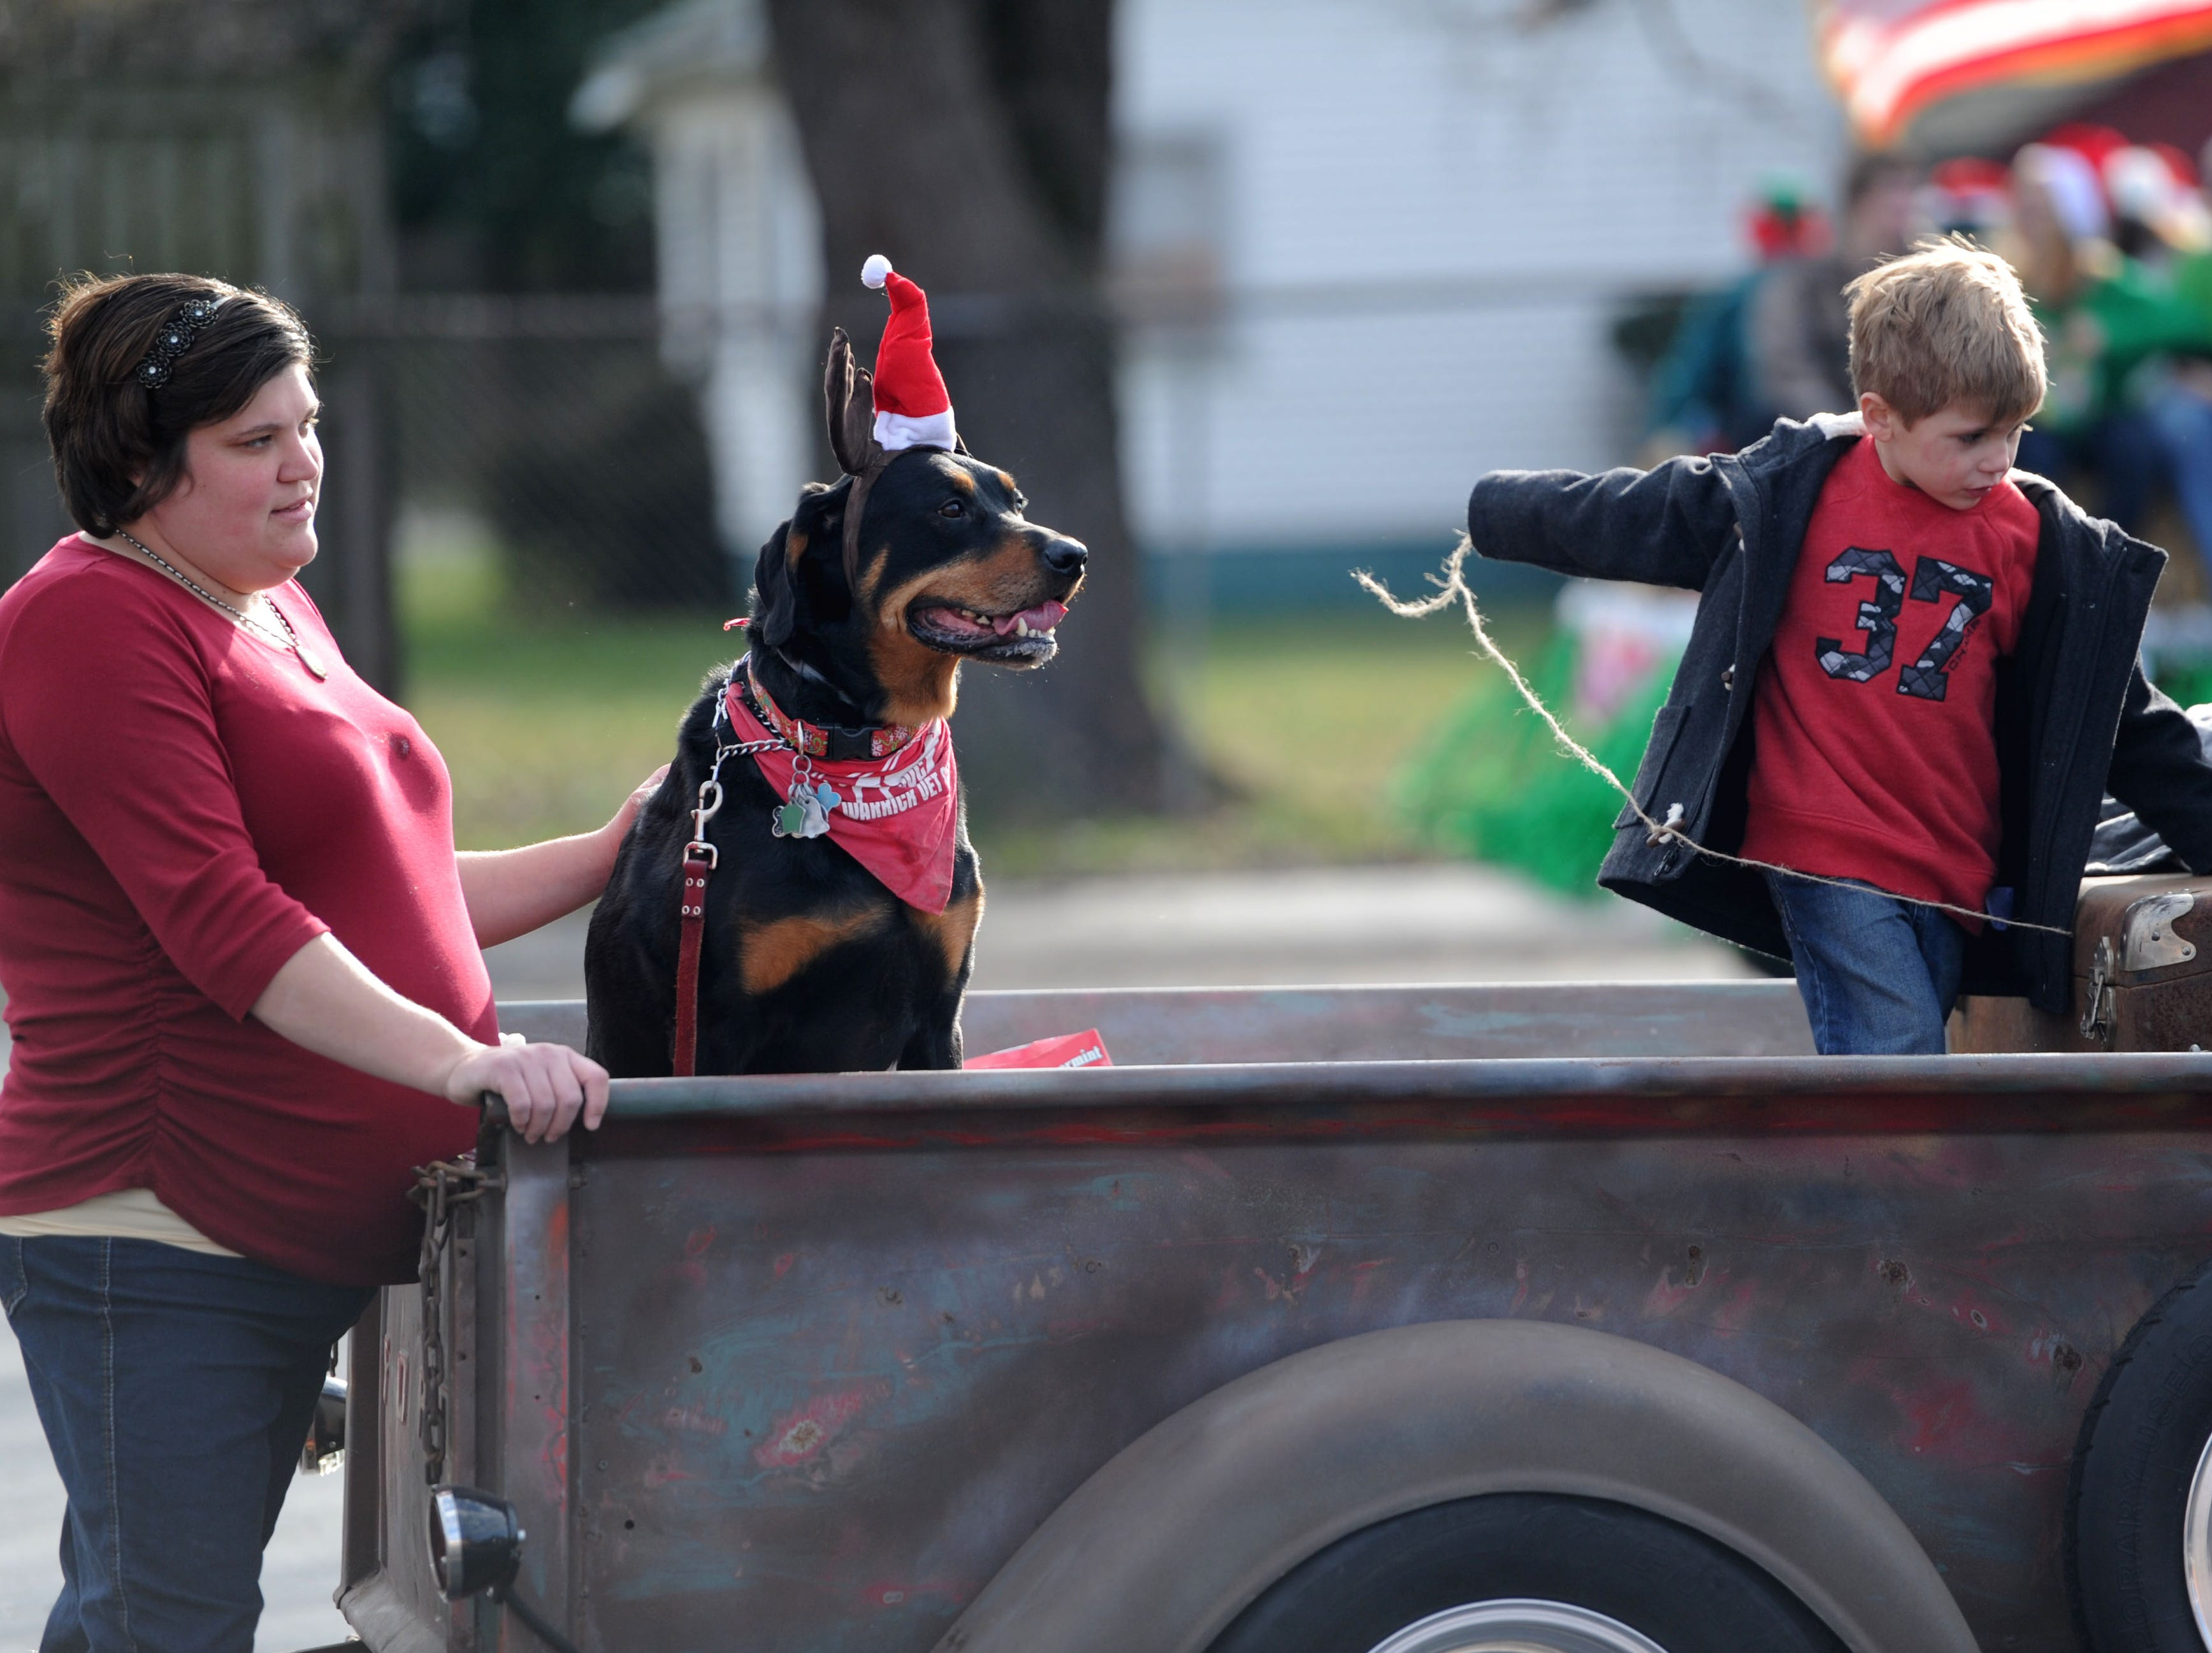 Hillary Paff and Gage Paff wait with their dog Jarvis before the Boonville Christmas Parade in downtown Boonville on Sunday, Dec. 6, 2015.